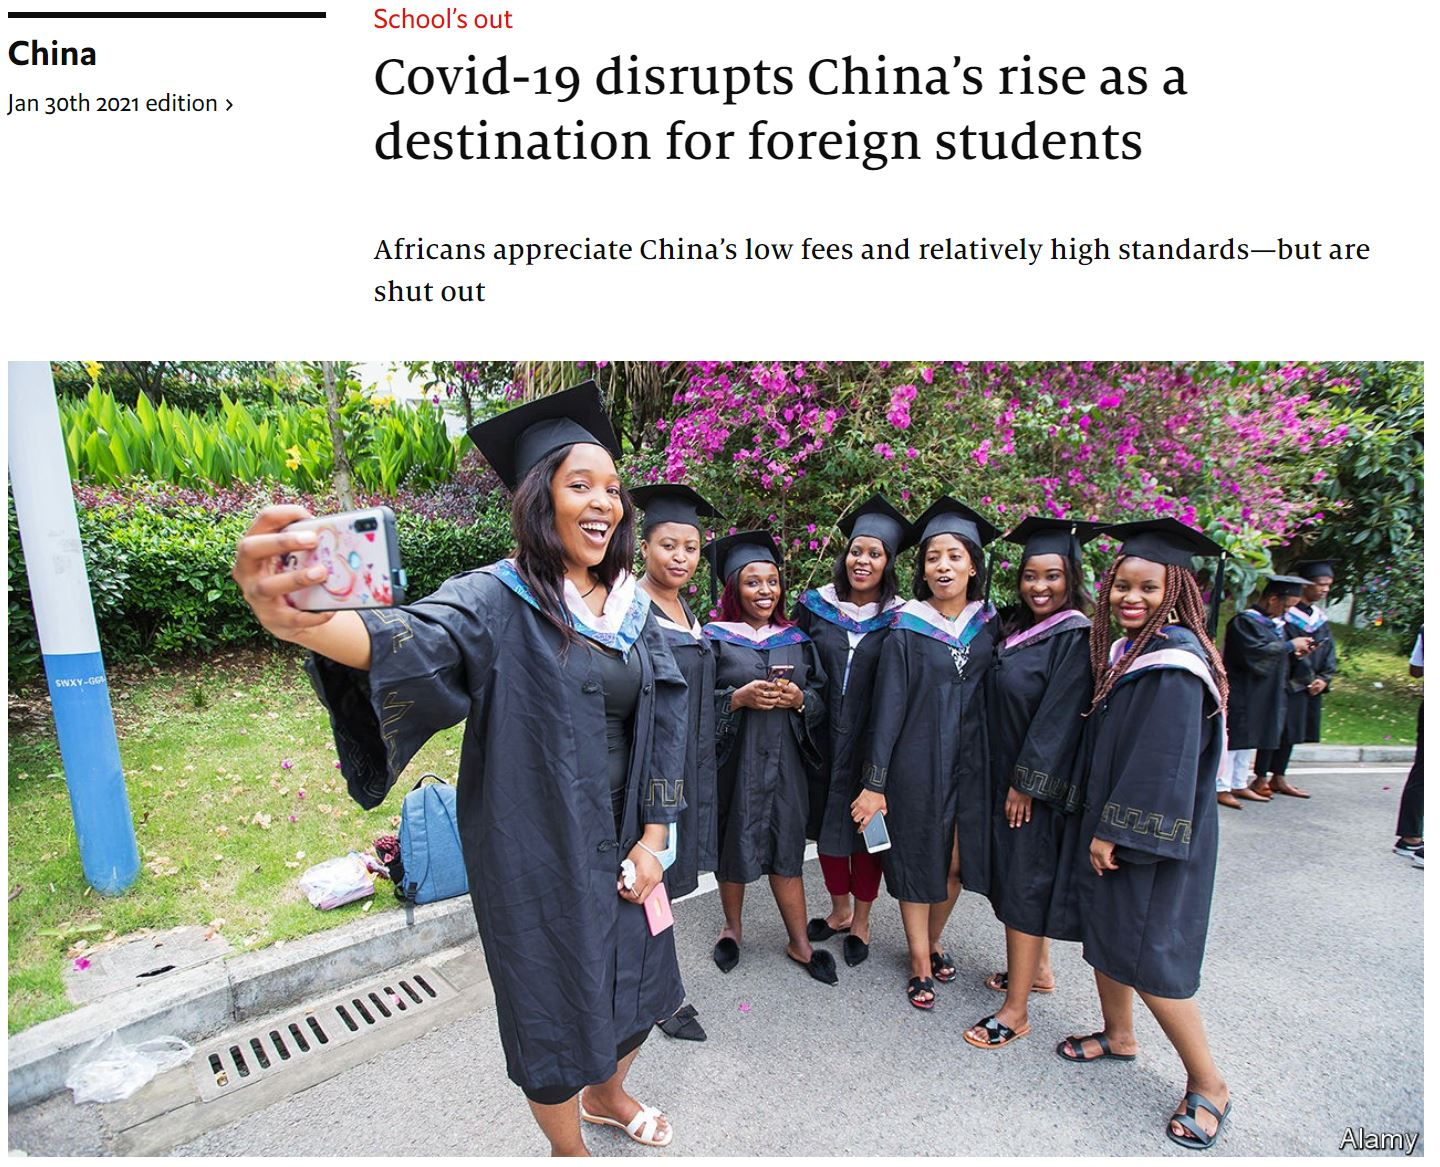 economist_2021-01-30-Covid-19 disrupts China's rise as a destination for foreign students